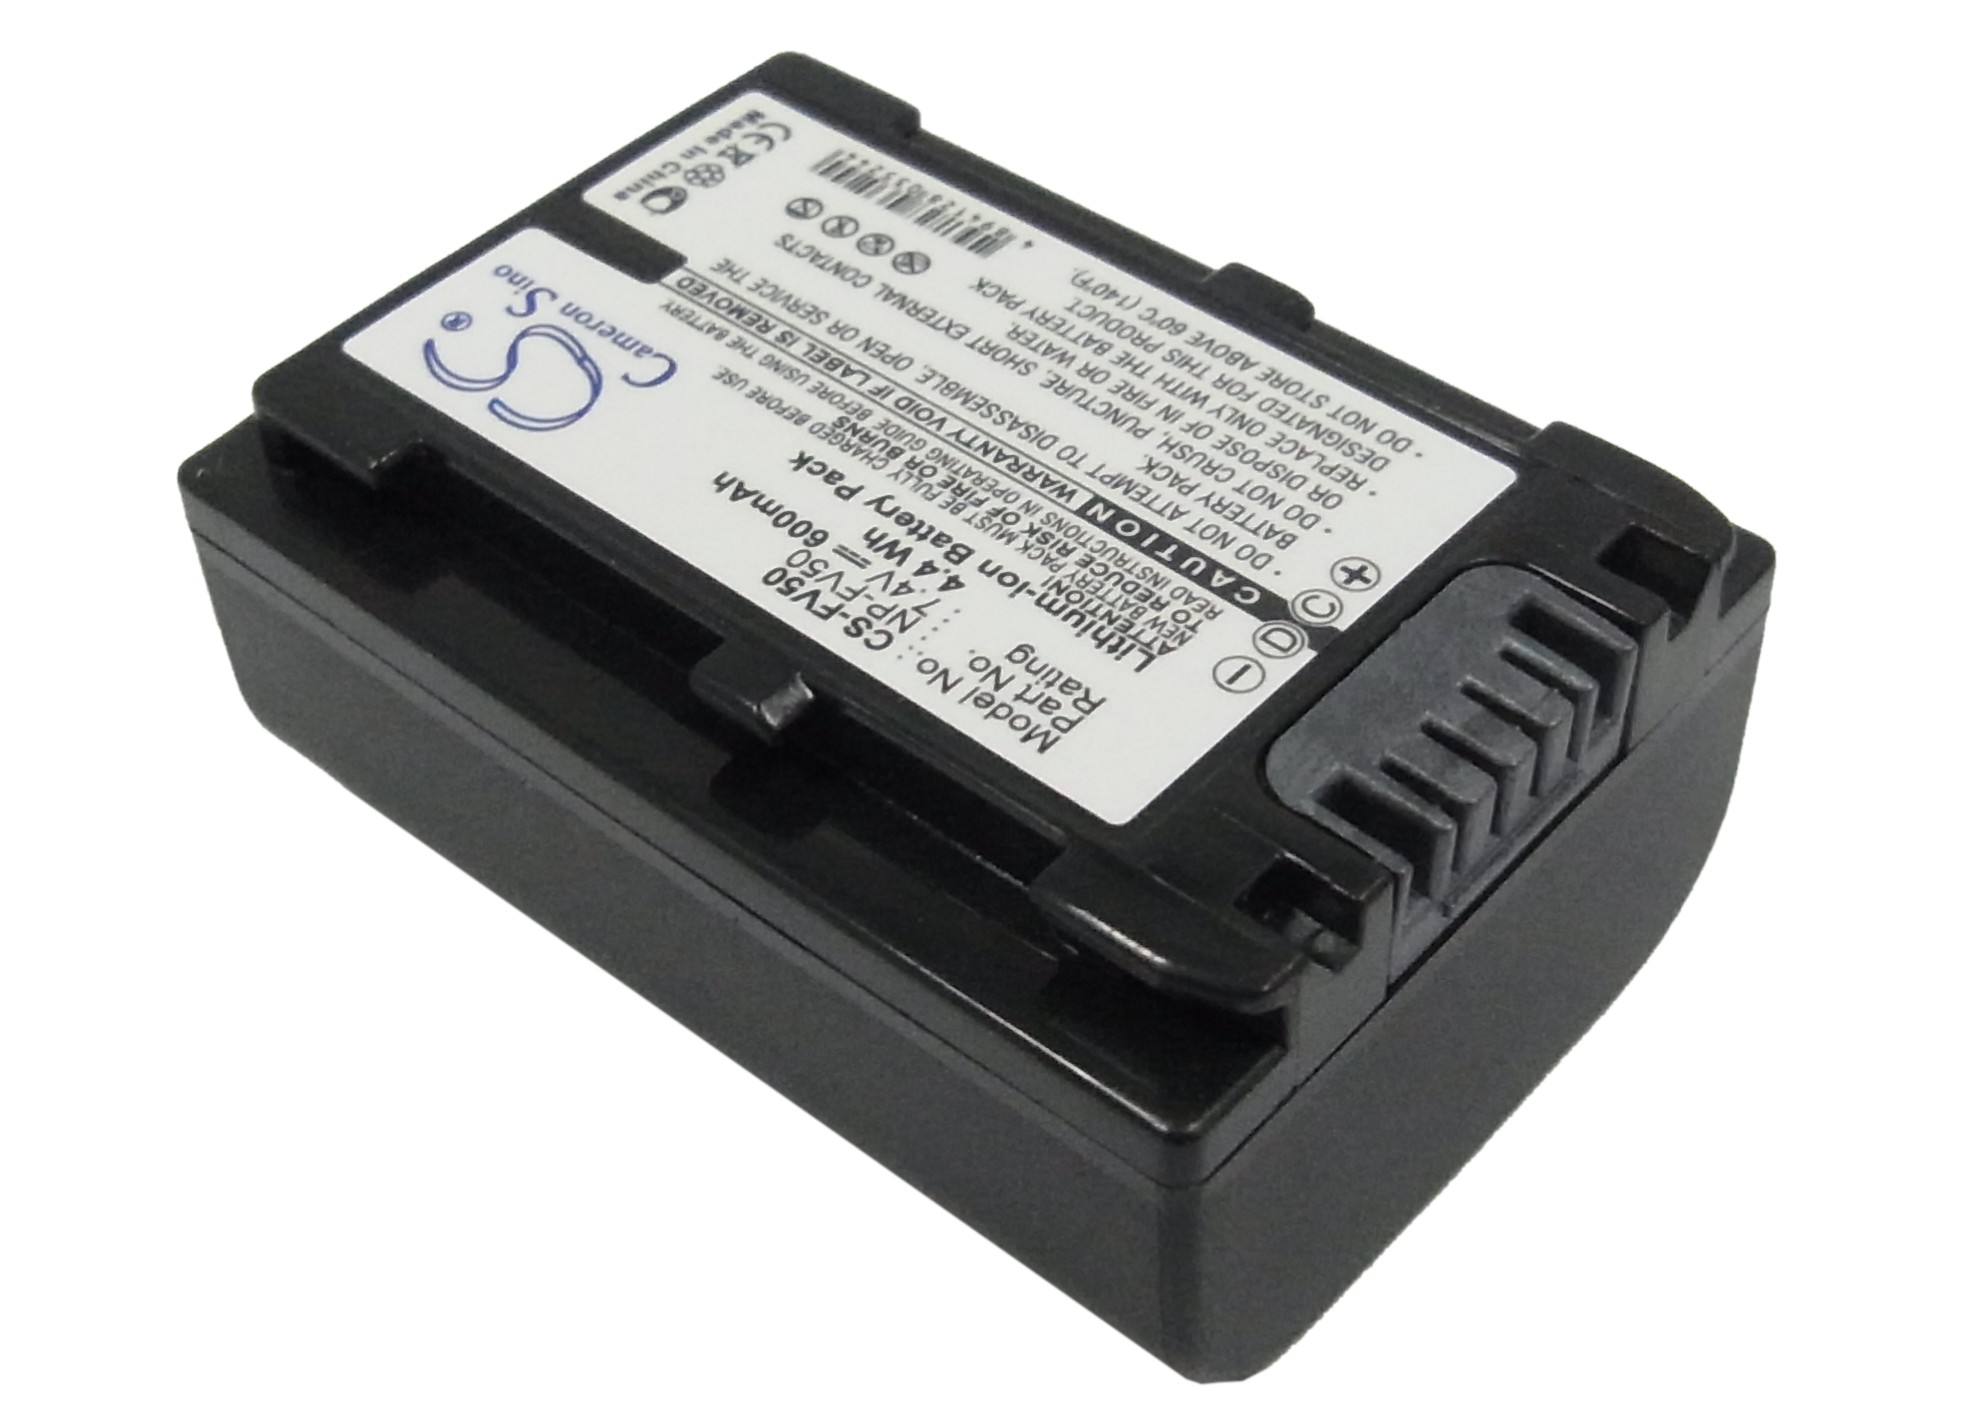 Battery Replacement for Sony DCR-HC52 DCR-HC52 DCR-HC53E DCR-HC62 DCR-HC62E DCR-HC65 DCR-HC85 DCR-HC85E Record